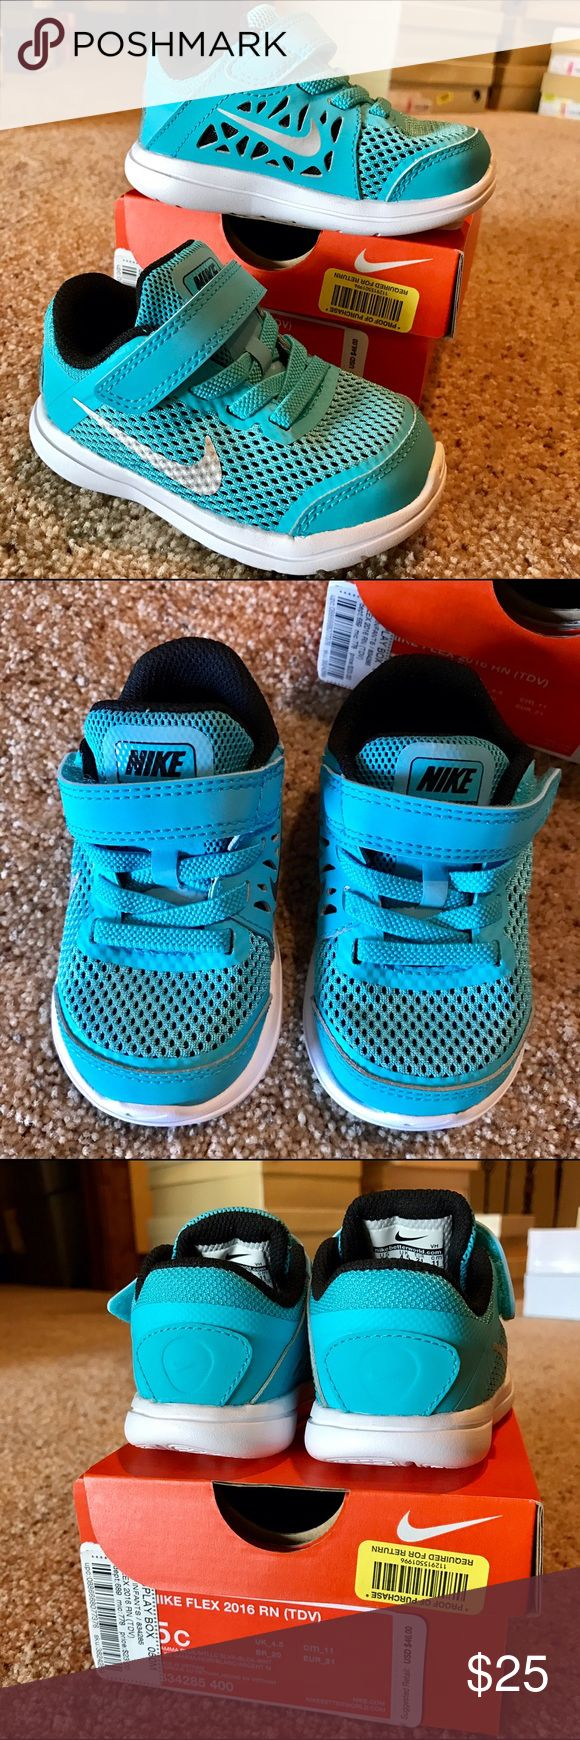 NEW Nike Toddler walking shoes 5 New Nike turquoise walking shoes in toddler size 5.  Stretch tie with Velcro closure.  White soles.  Silver metallic Swoosh.  Black padded ankle support. Nike Shoes Baby & Walker